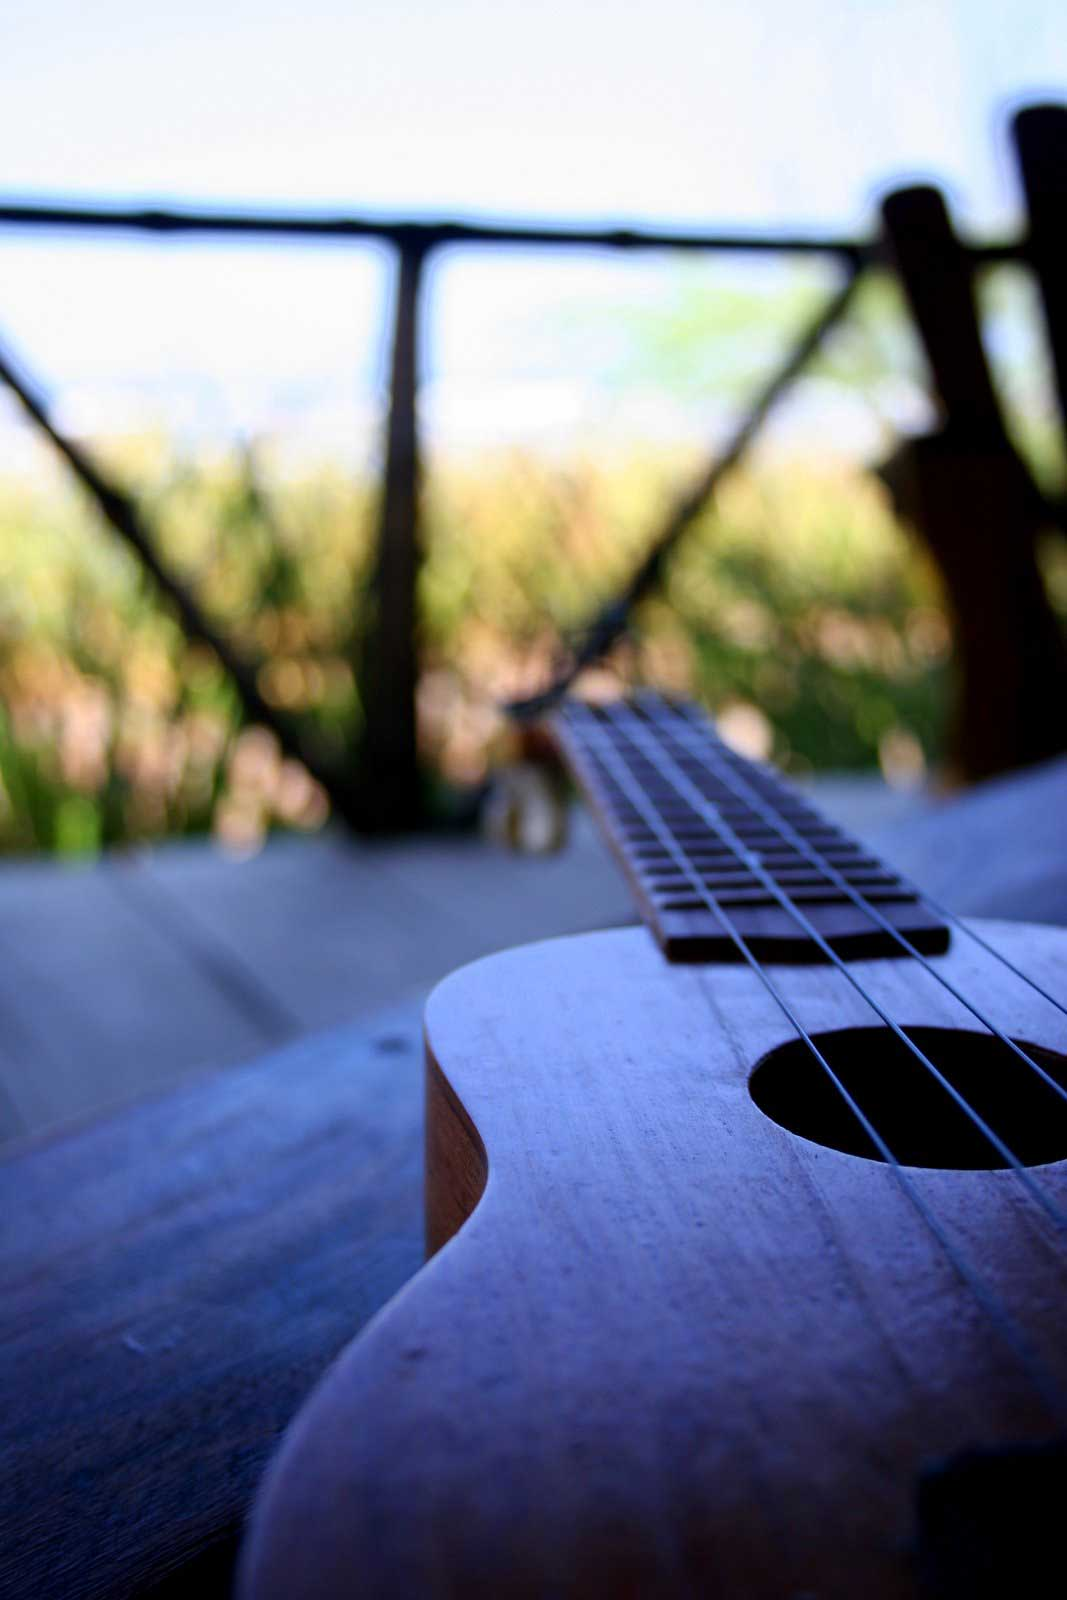 another shot of the kit ukulele